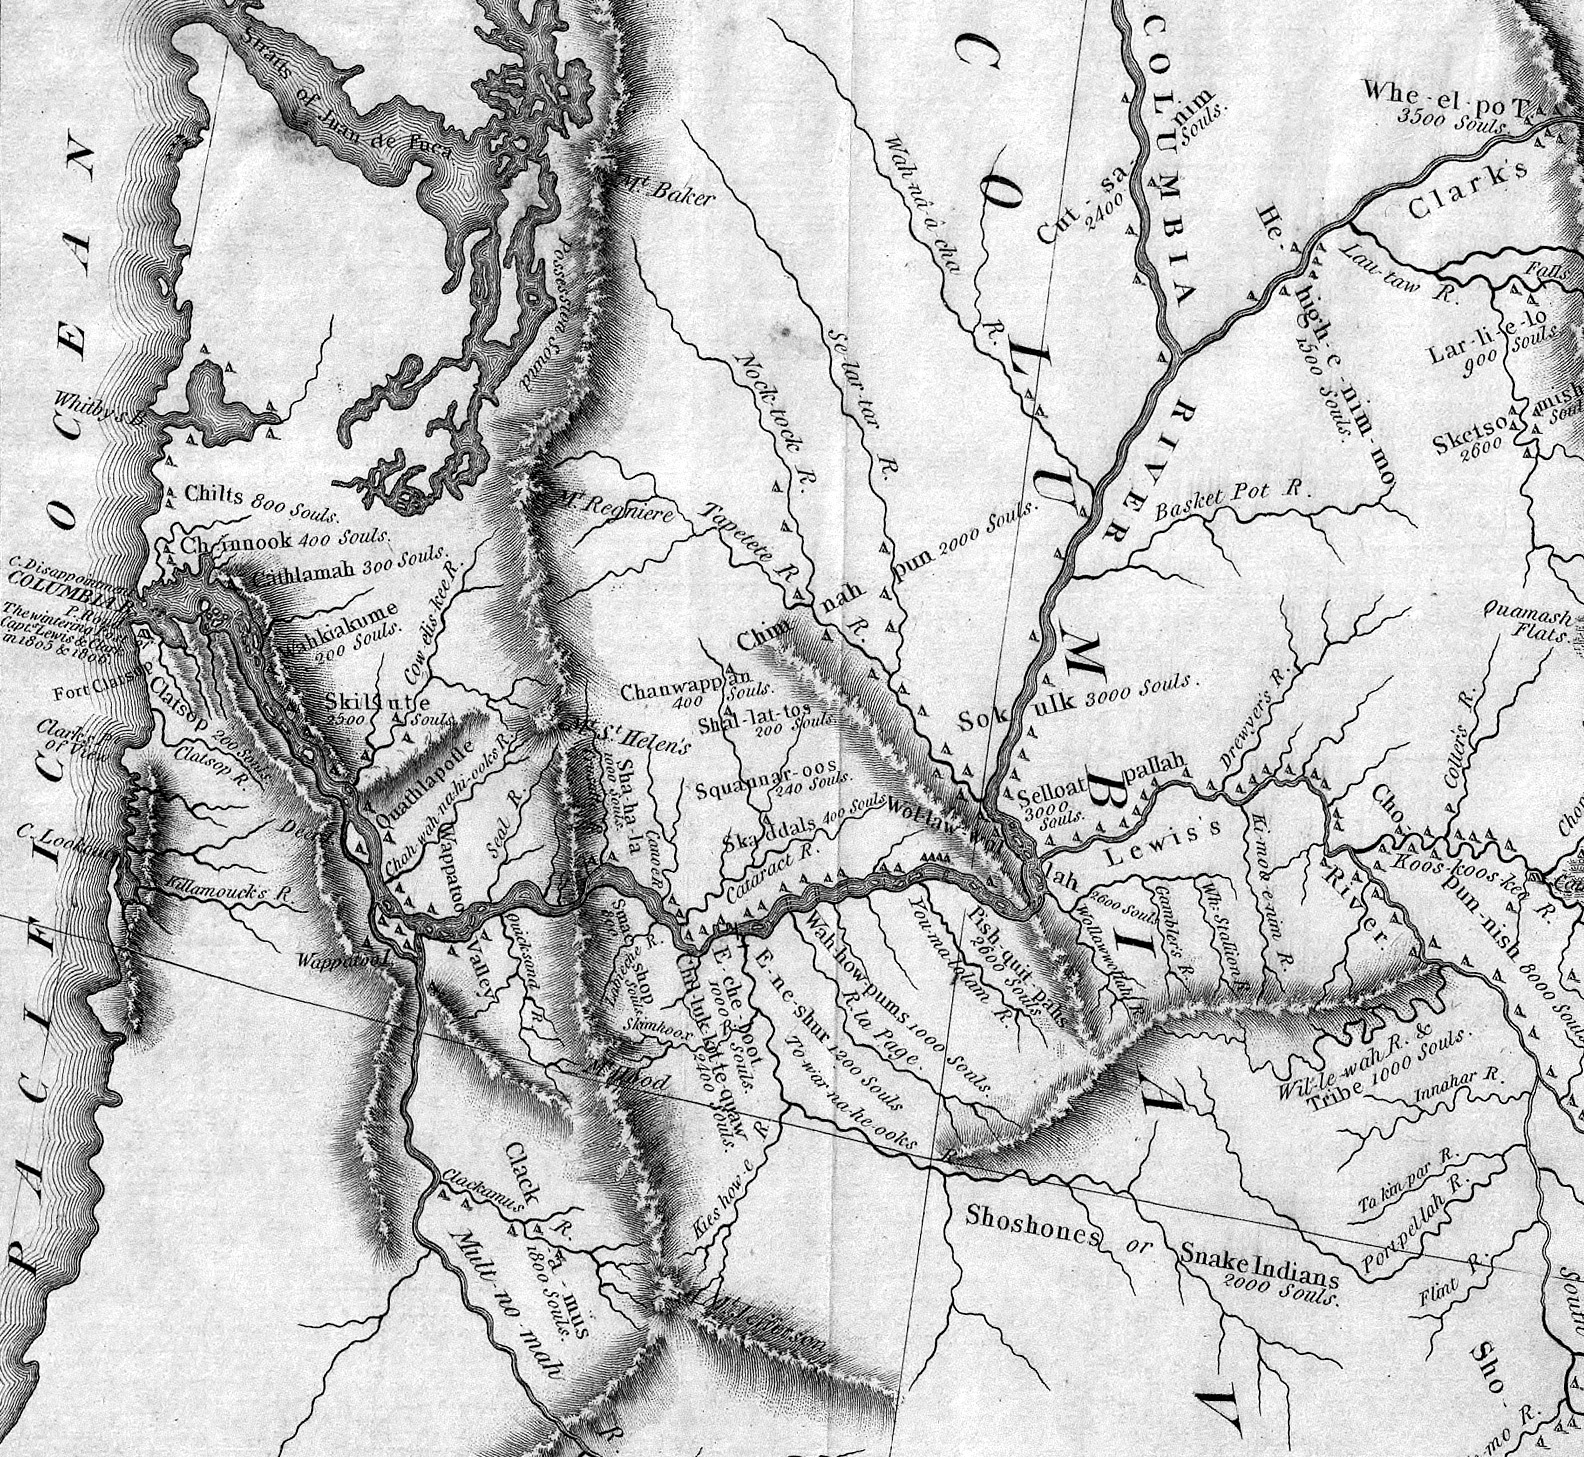 FileLewis And Clark Columbia Riverjpg Wikimedia Commons - Willamette river on map of us